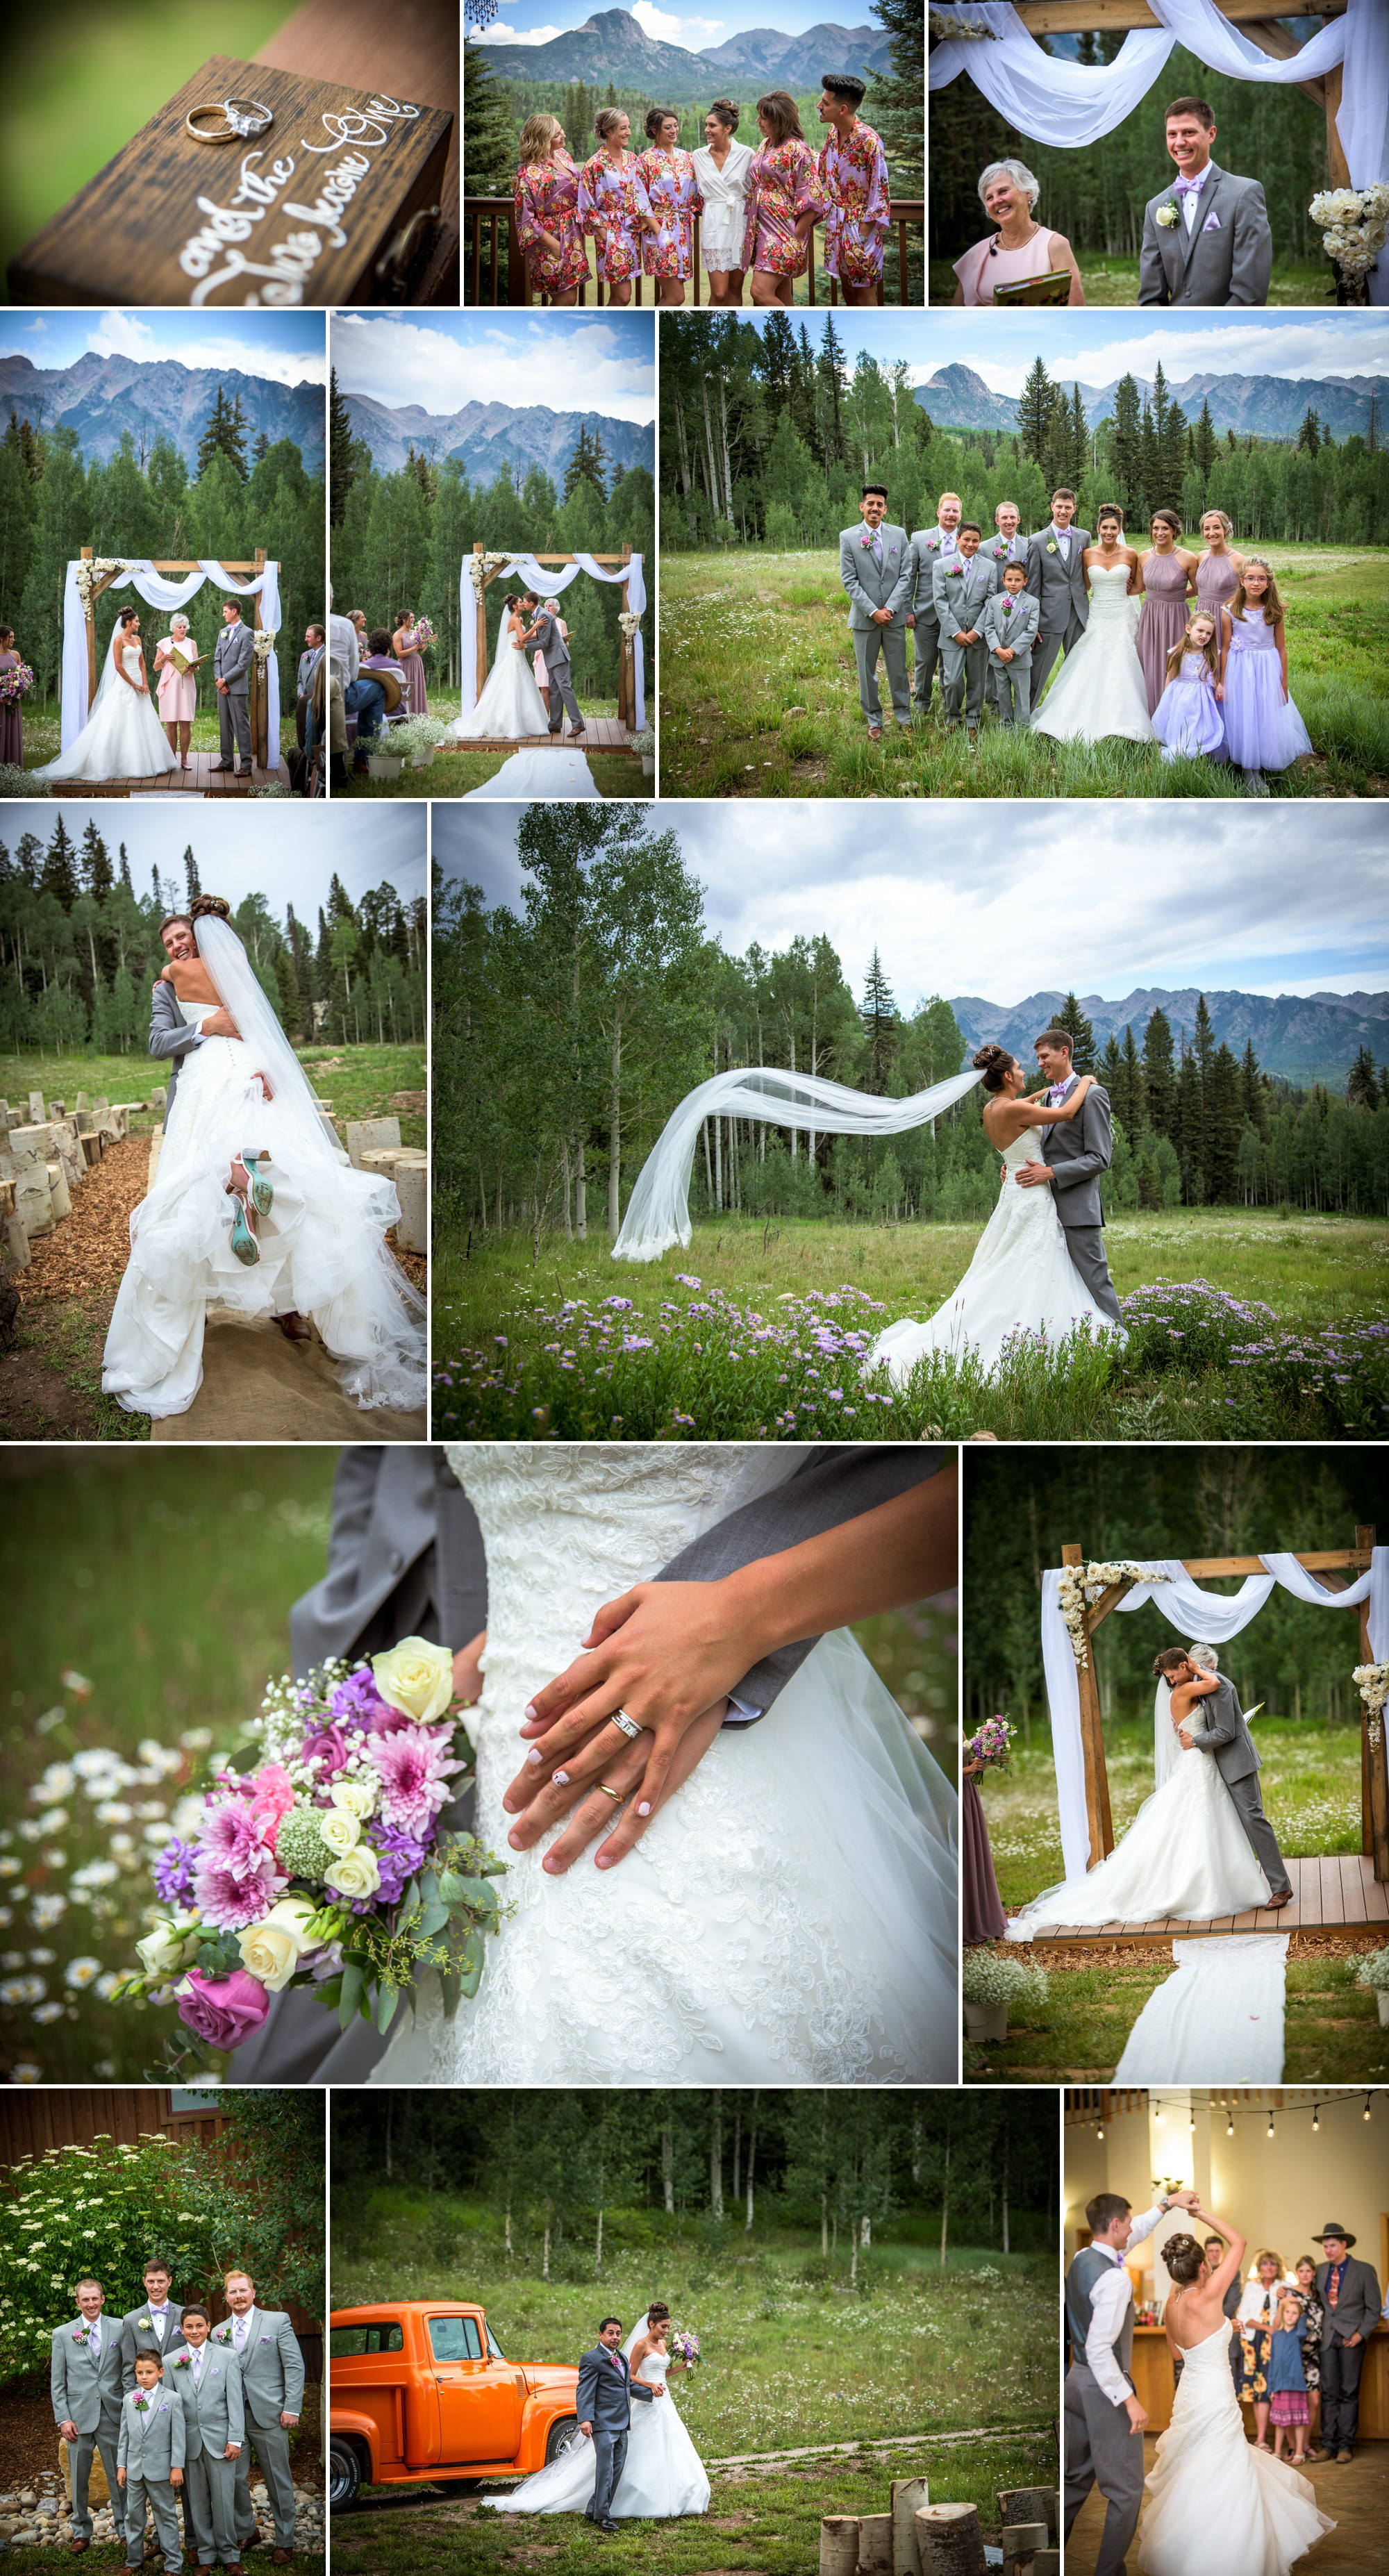 Wedding portraits in Durango Colorado by Allison Ragsdale Photography